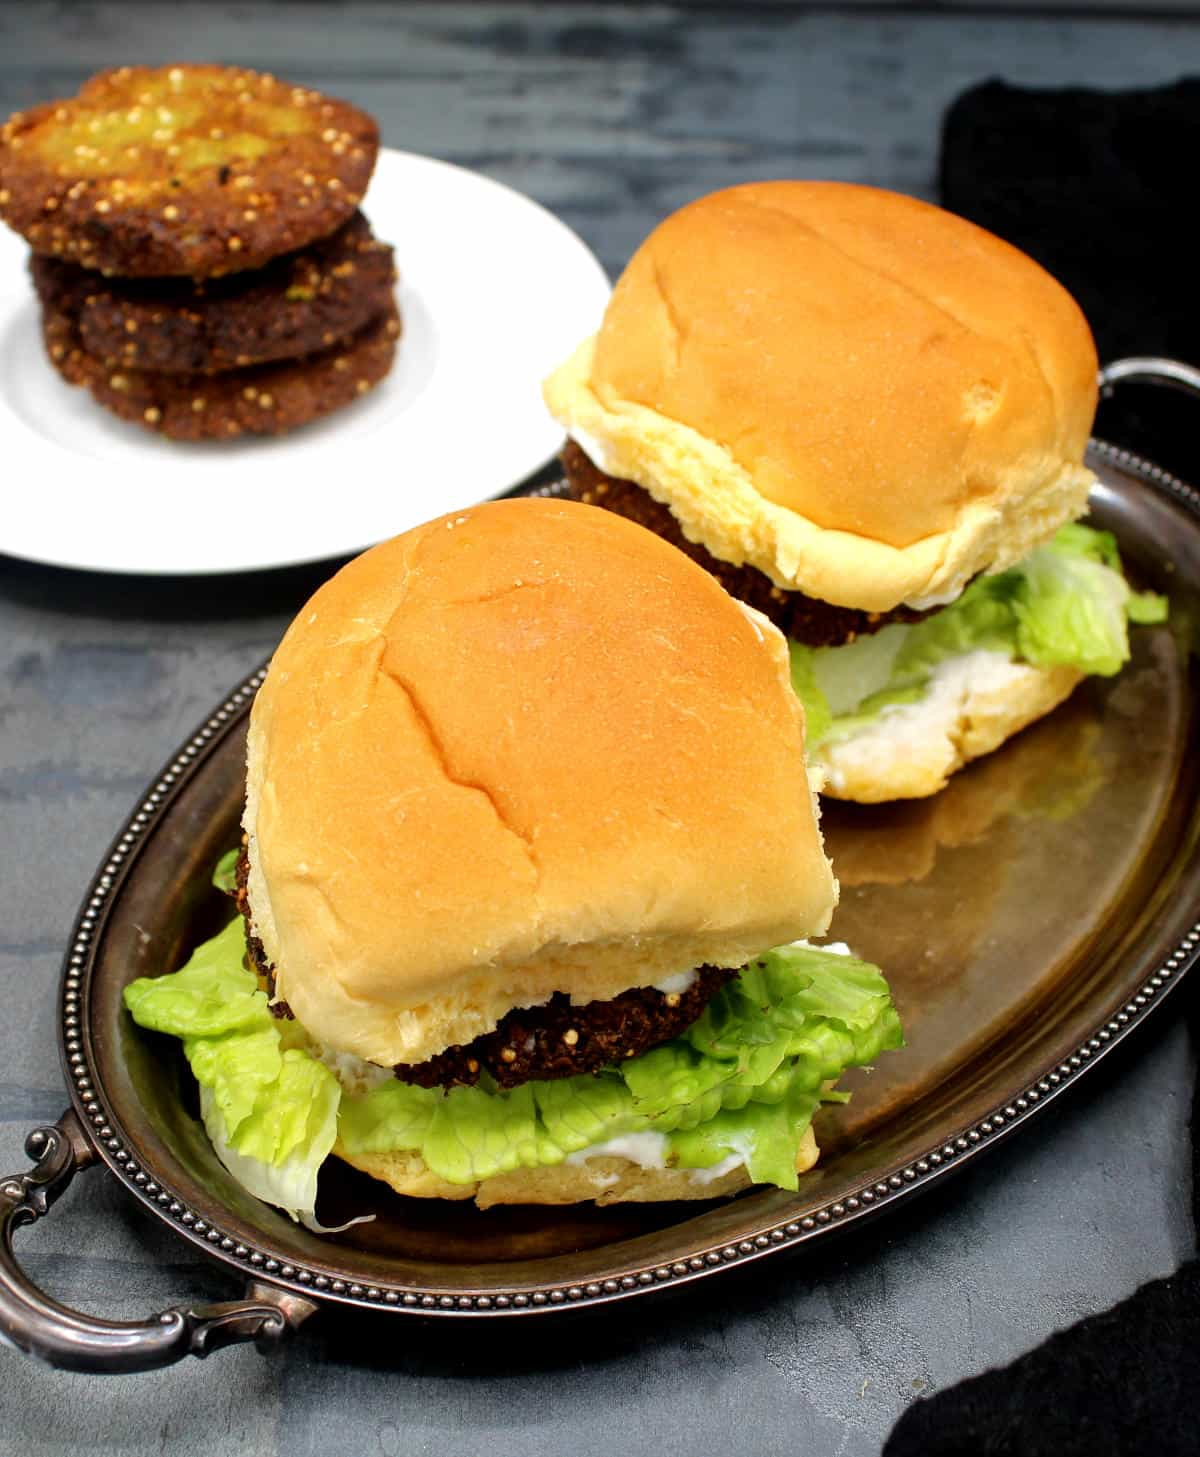 Photo of two falafel burgers on a silver tray with lettuce and vegan mayo and more falafel burger patties on a white plate in background.